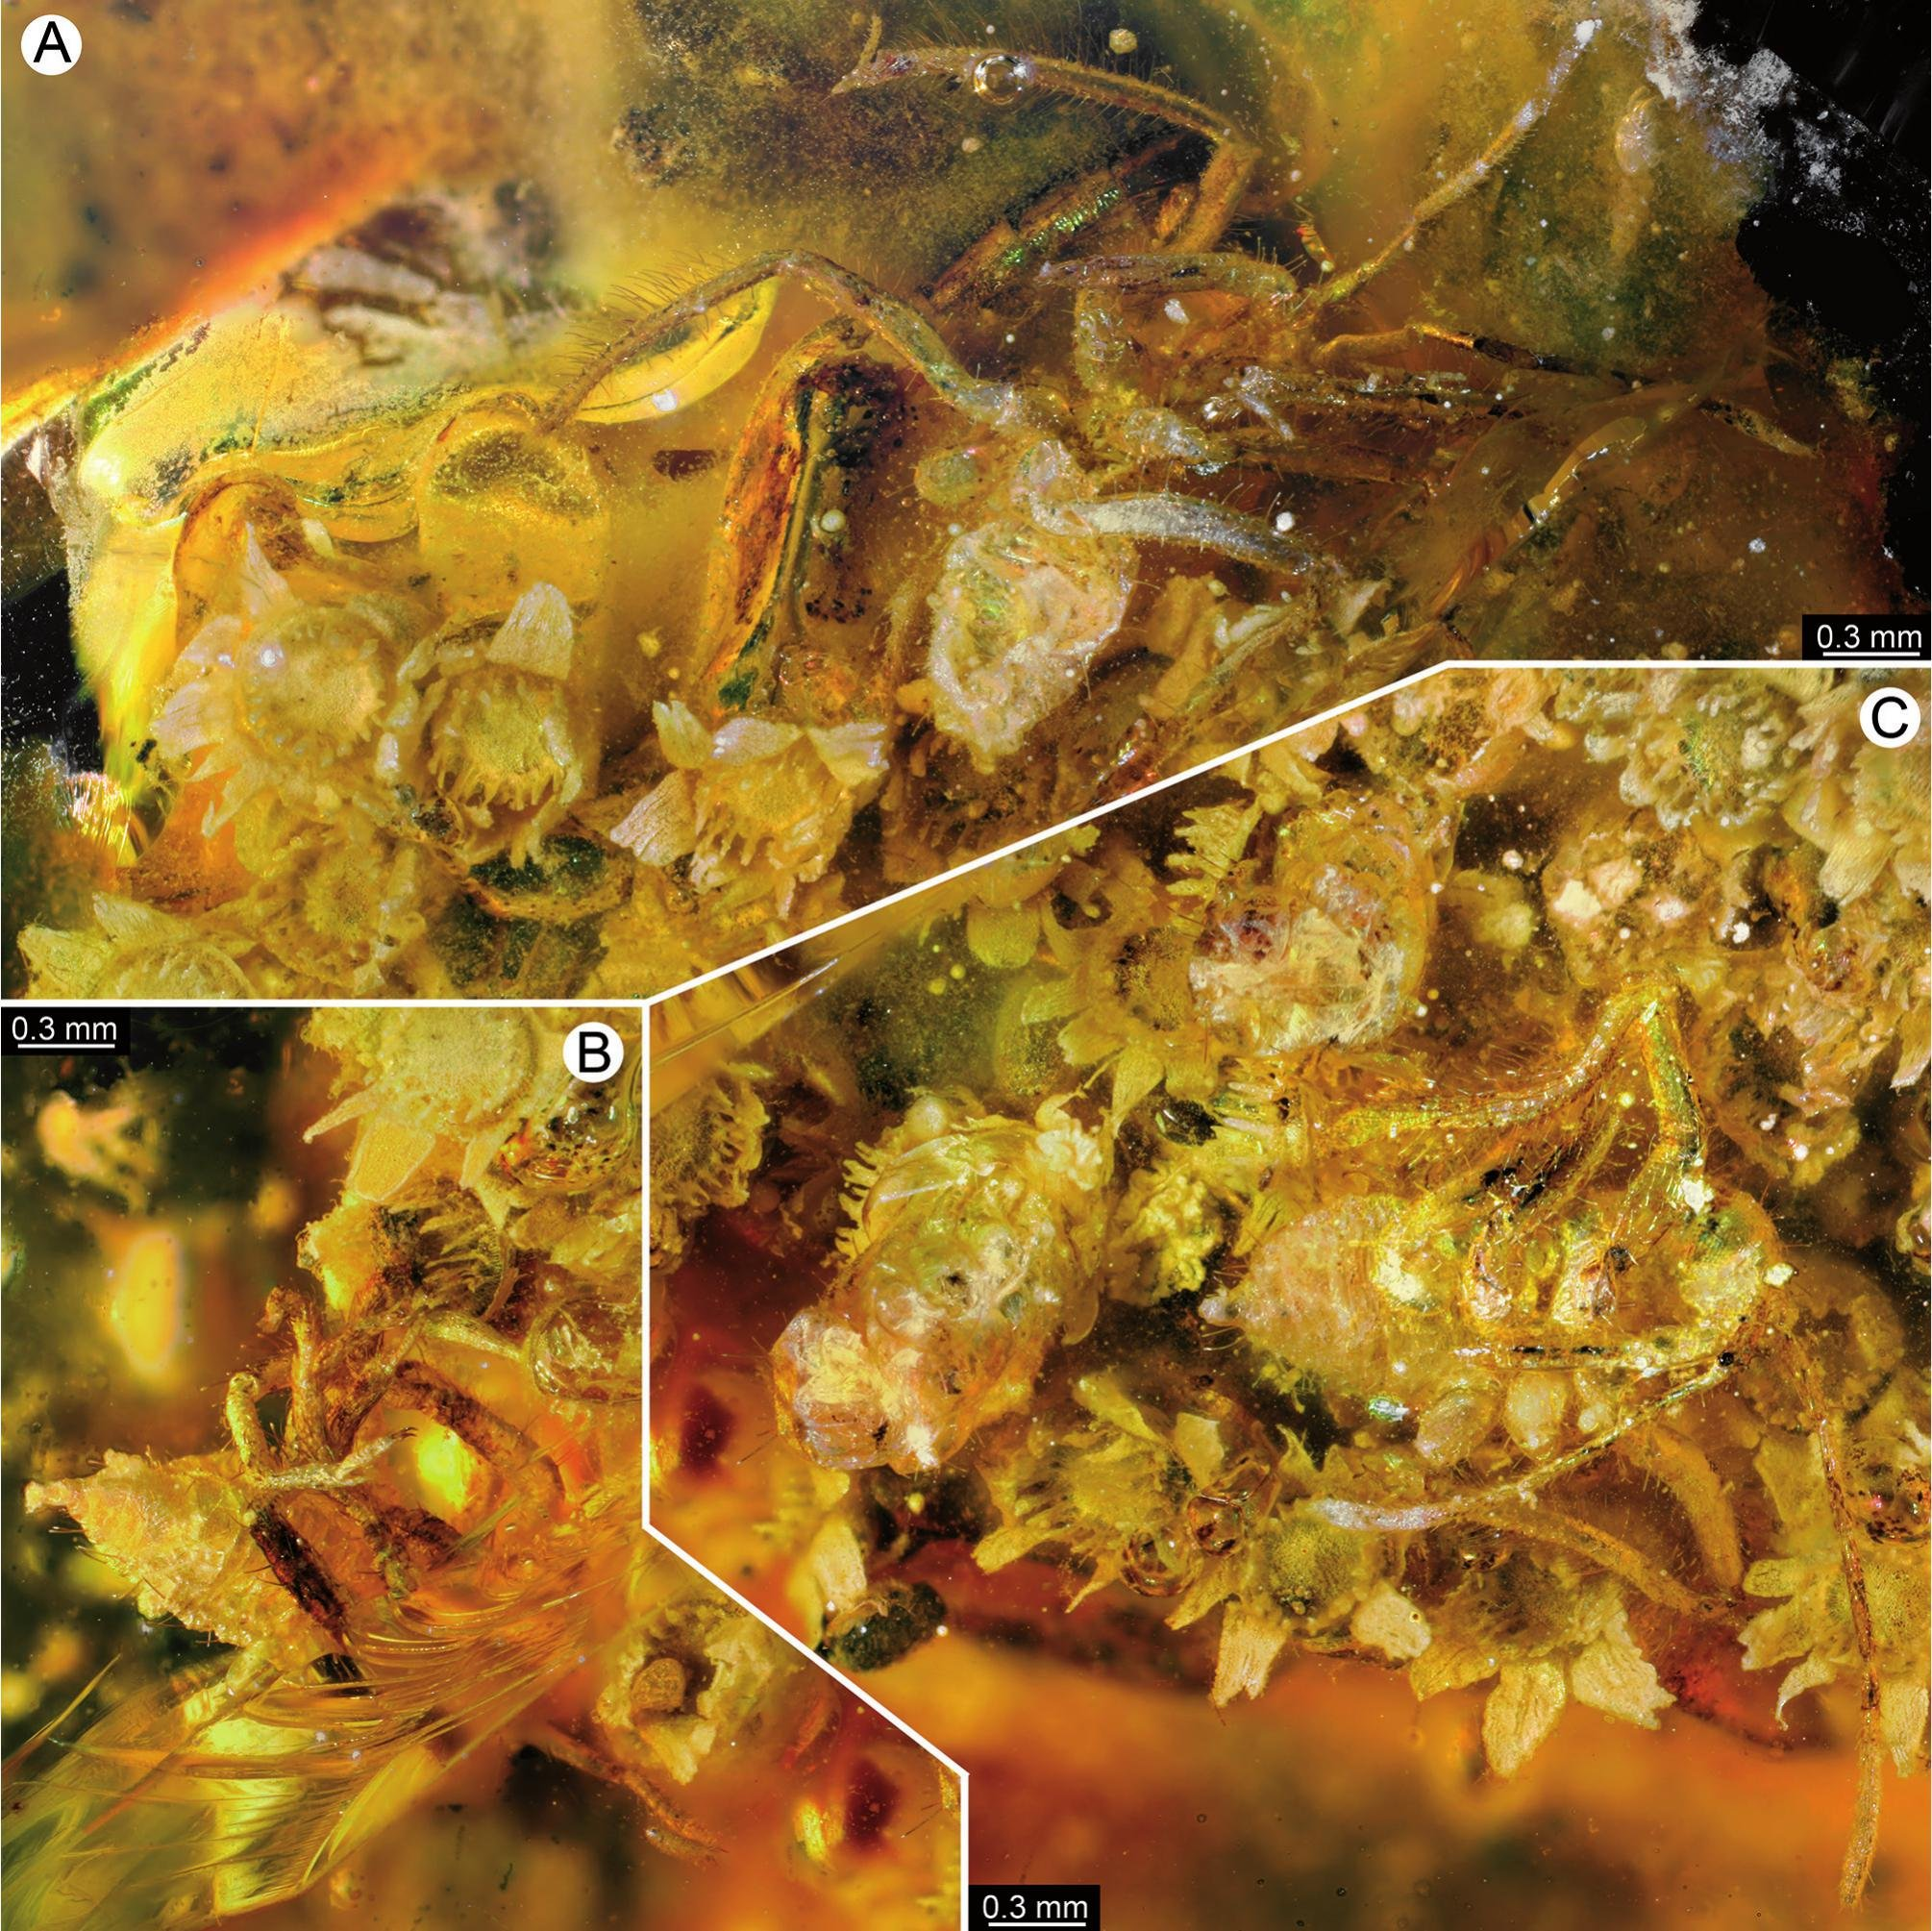 Hatching assassin bug nymphs from Dominican Amber.  Image from Hörnig et al. 2019.